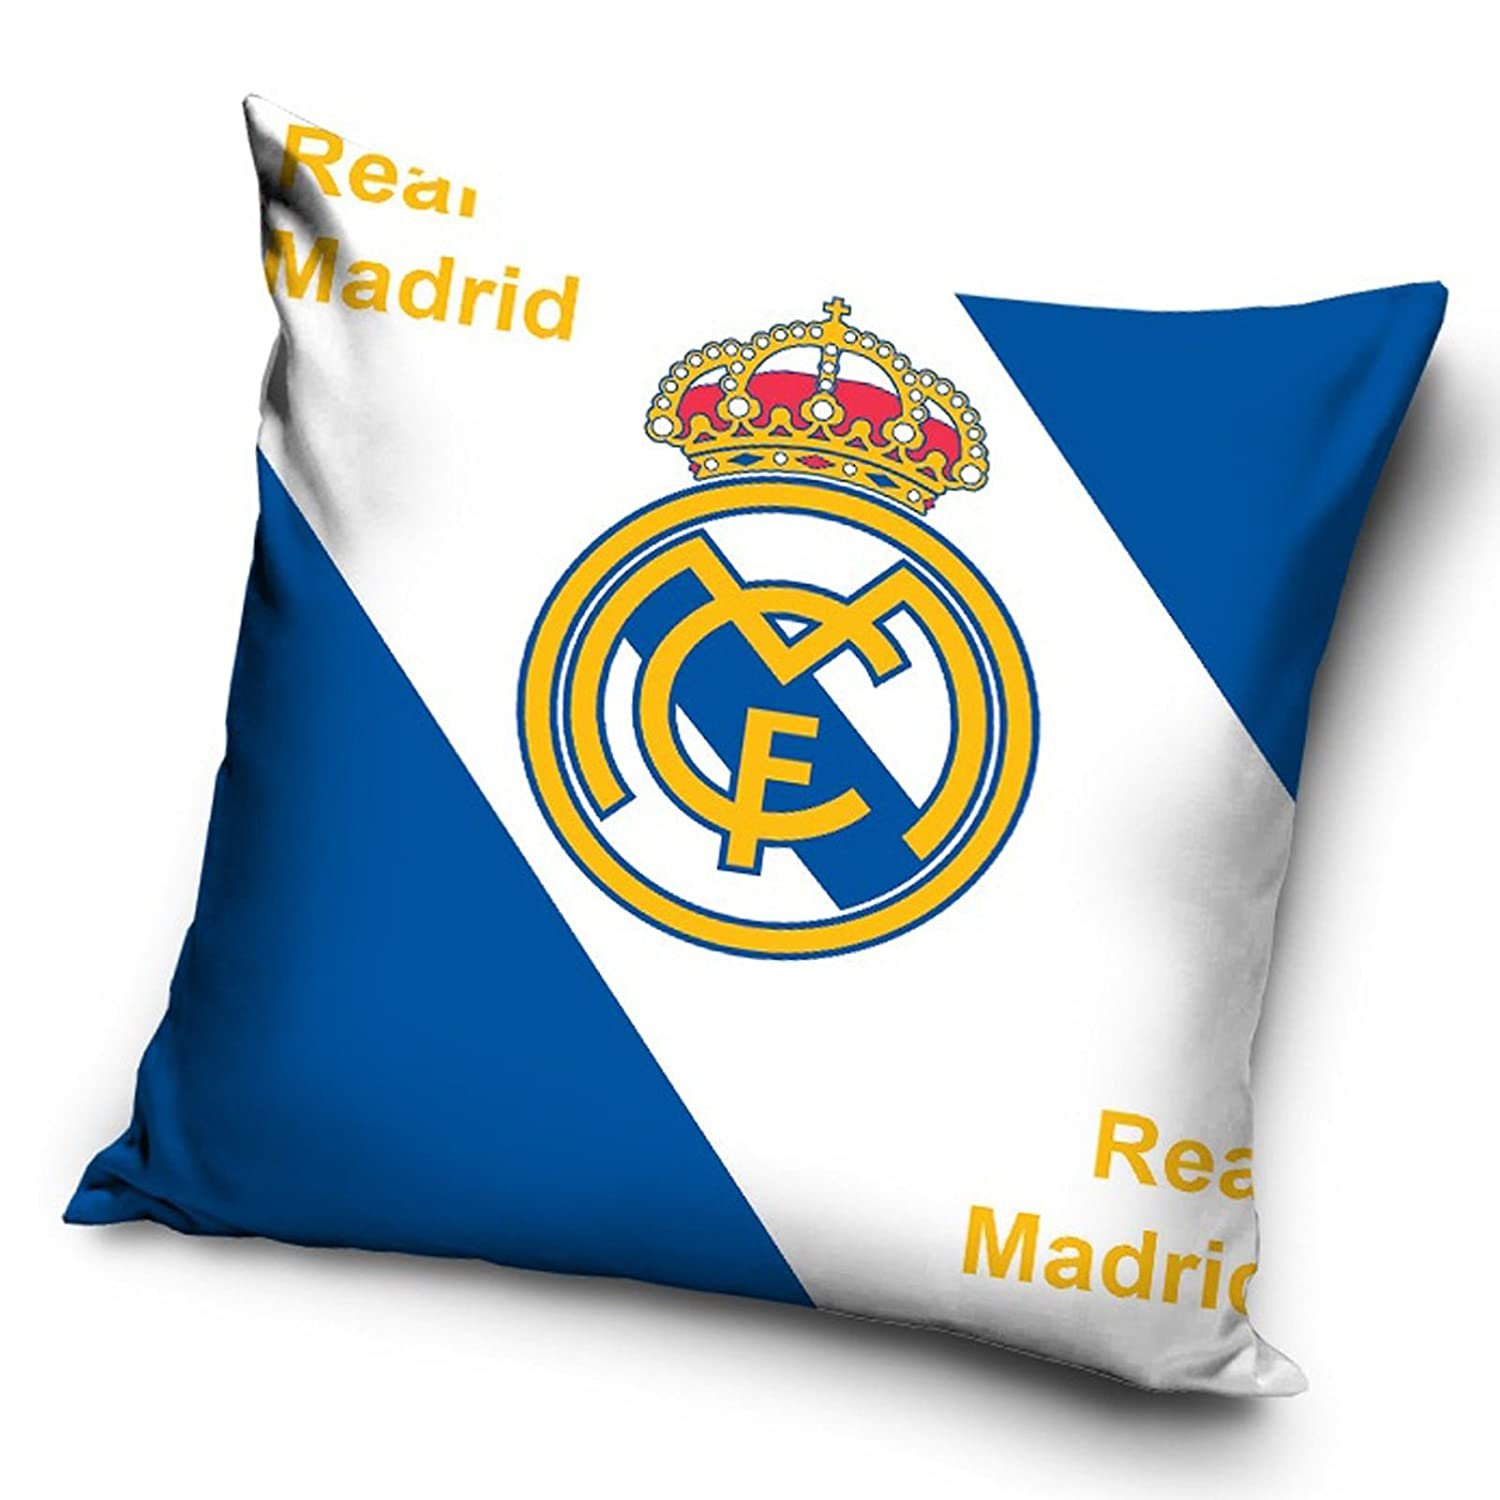 Amazon.com: Real Madrid CF logotipo – Cojín con relleno ...